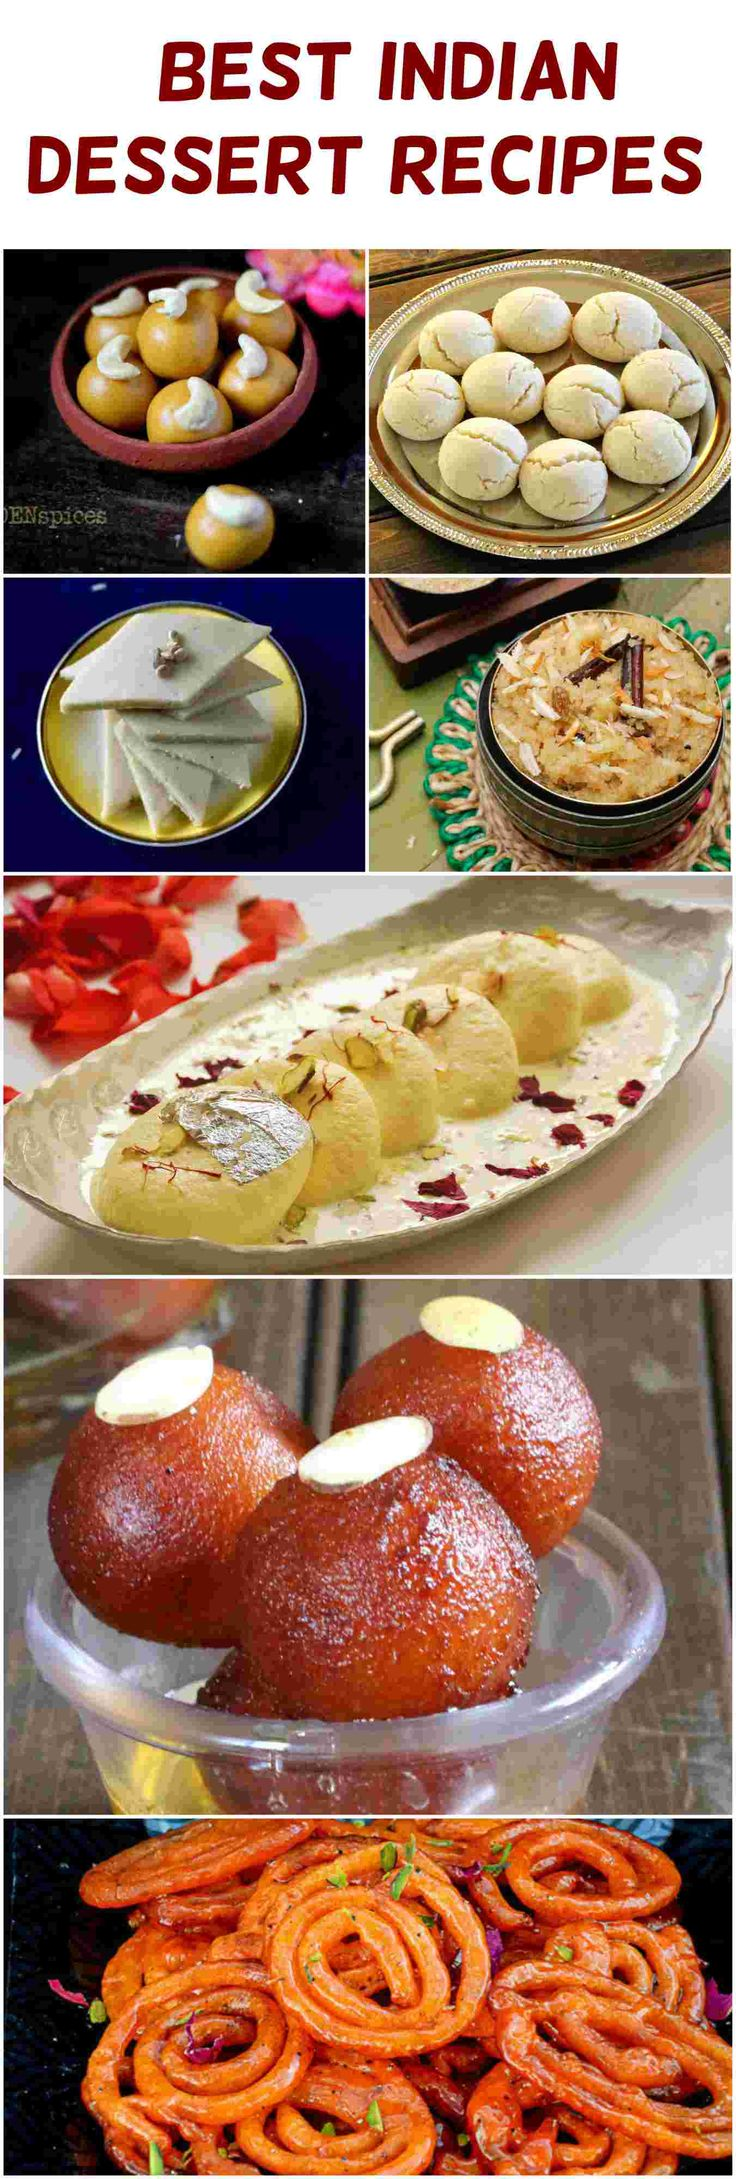 1000 ideas about indian cake on pinterest indian for American cuisine desserts